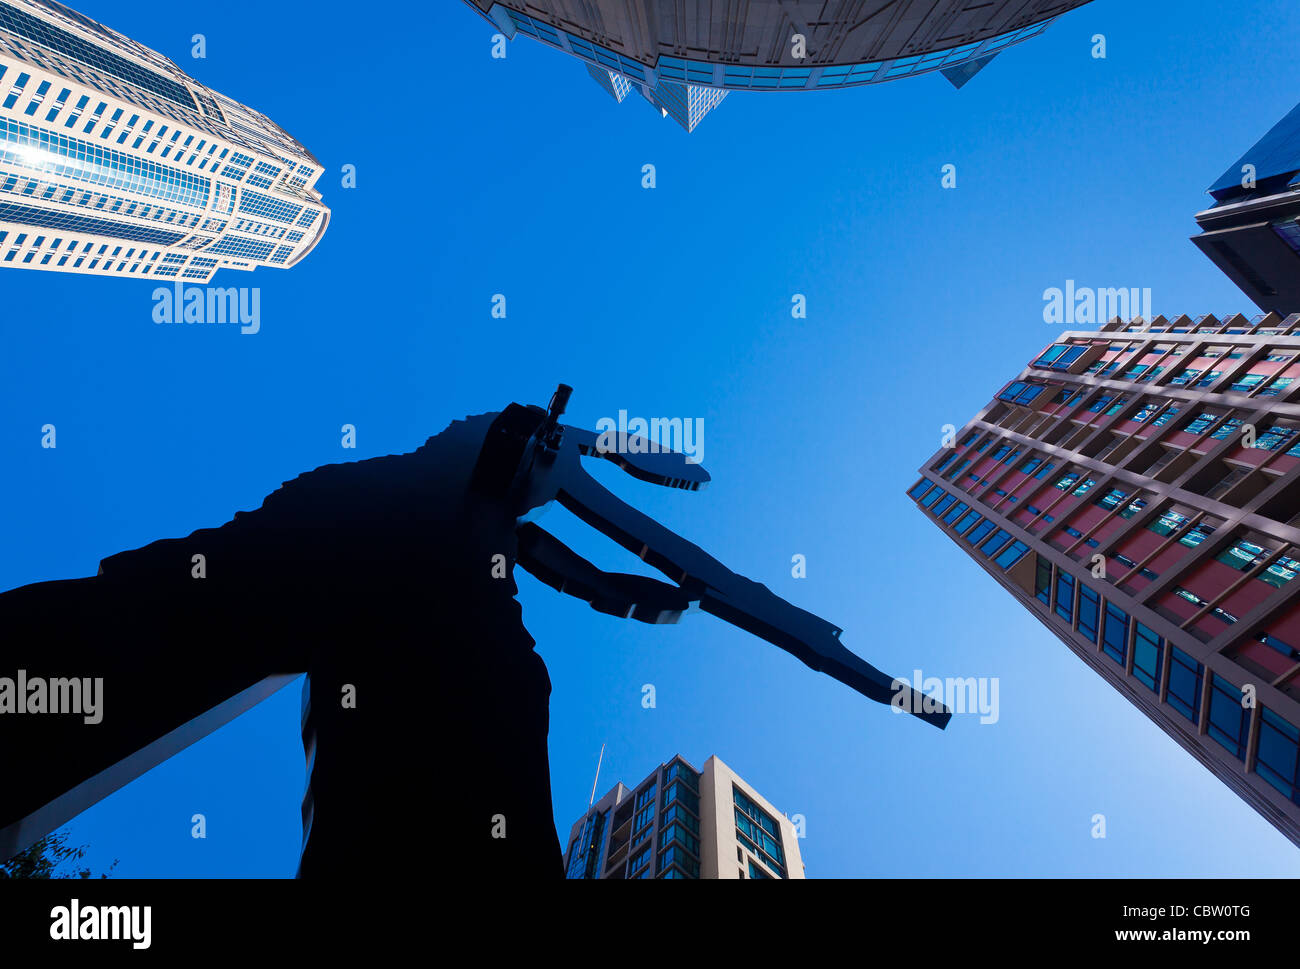 'Hammering Man' sculpture in front of the Seattle Art Museum - Stock Image